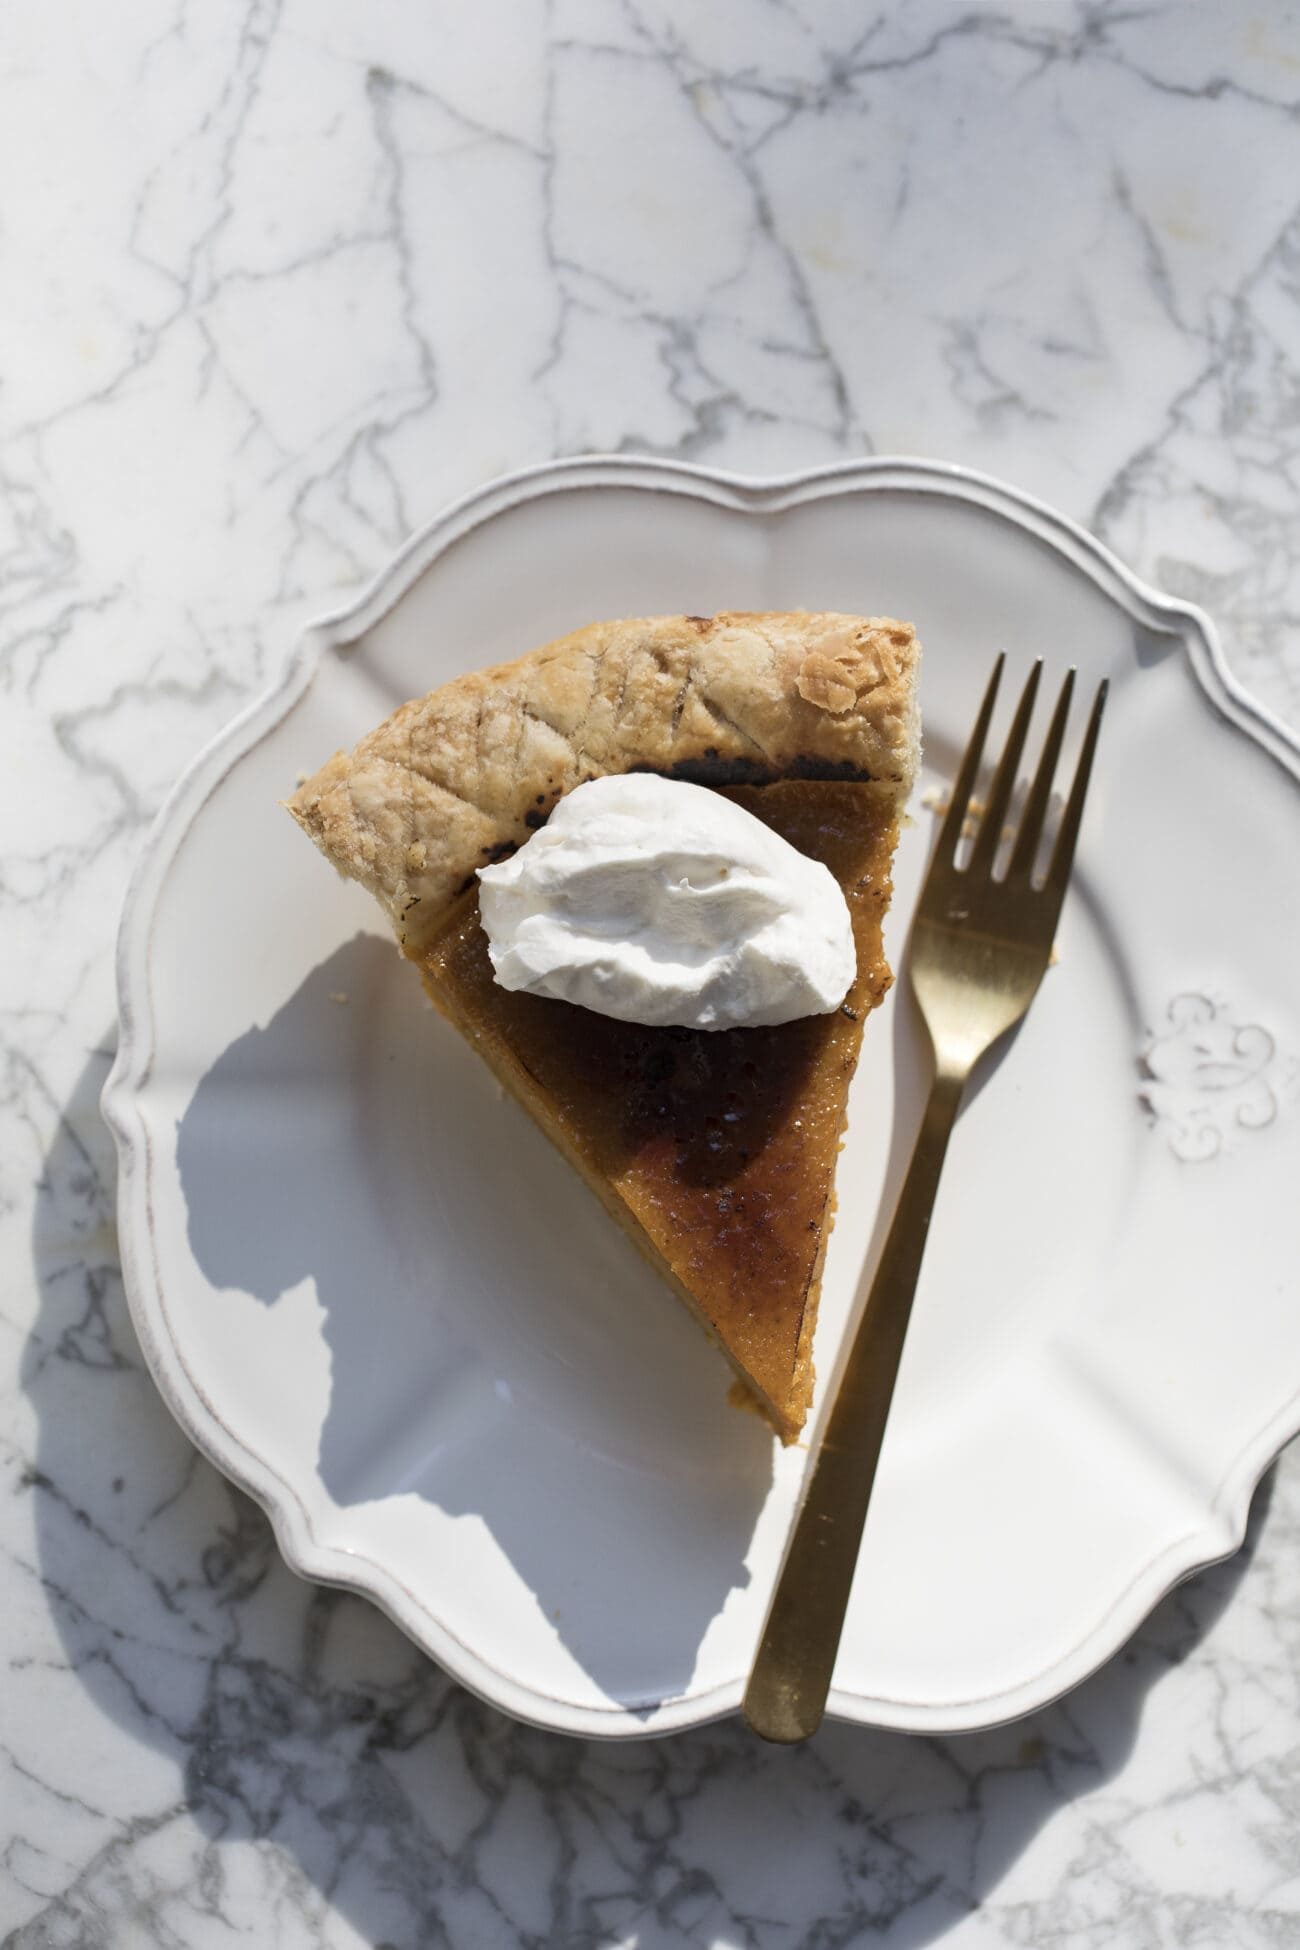 Slice of pie on a white plate with a fork beside it